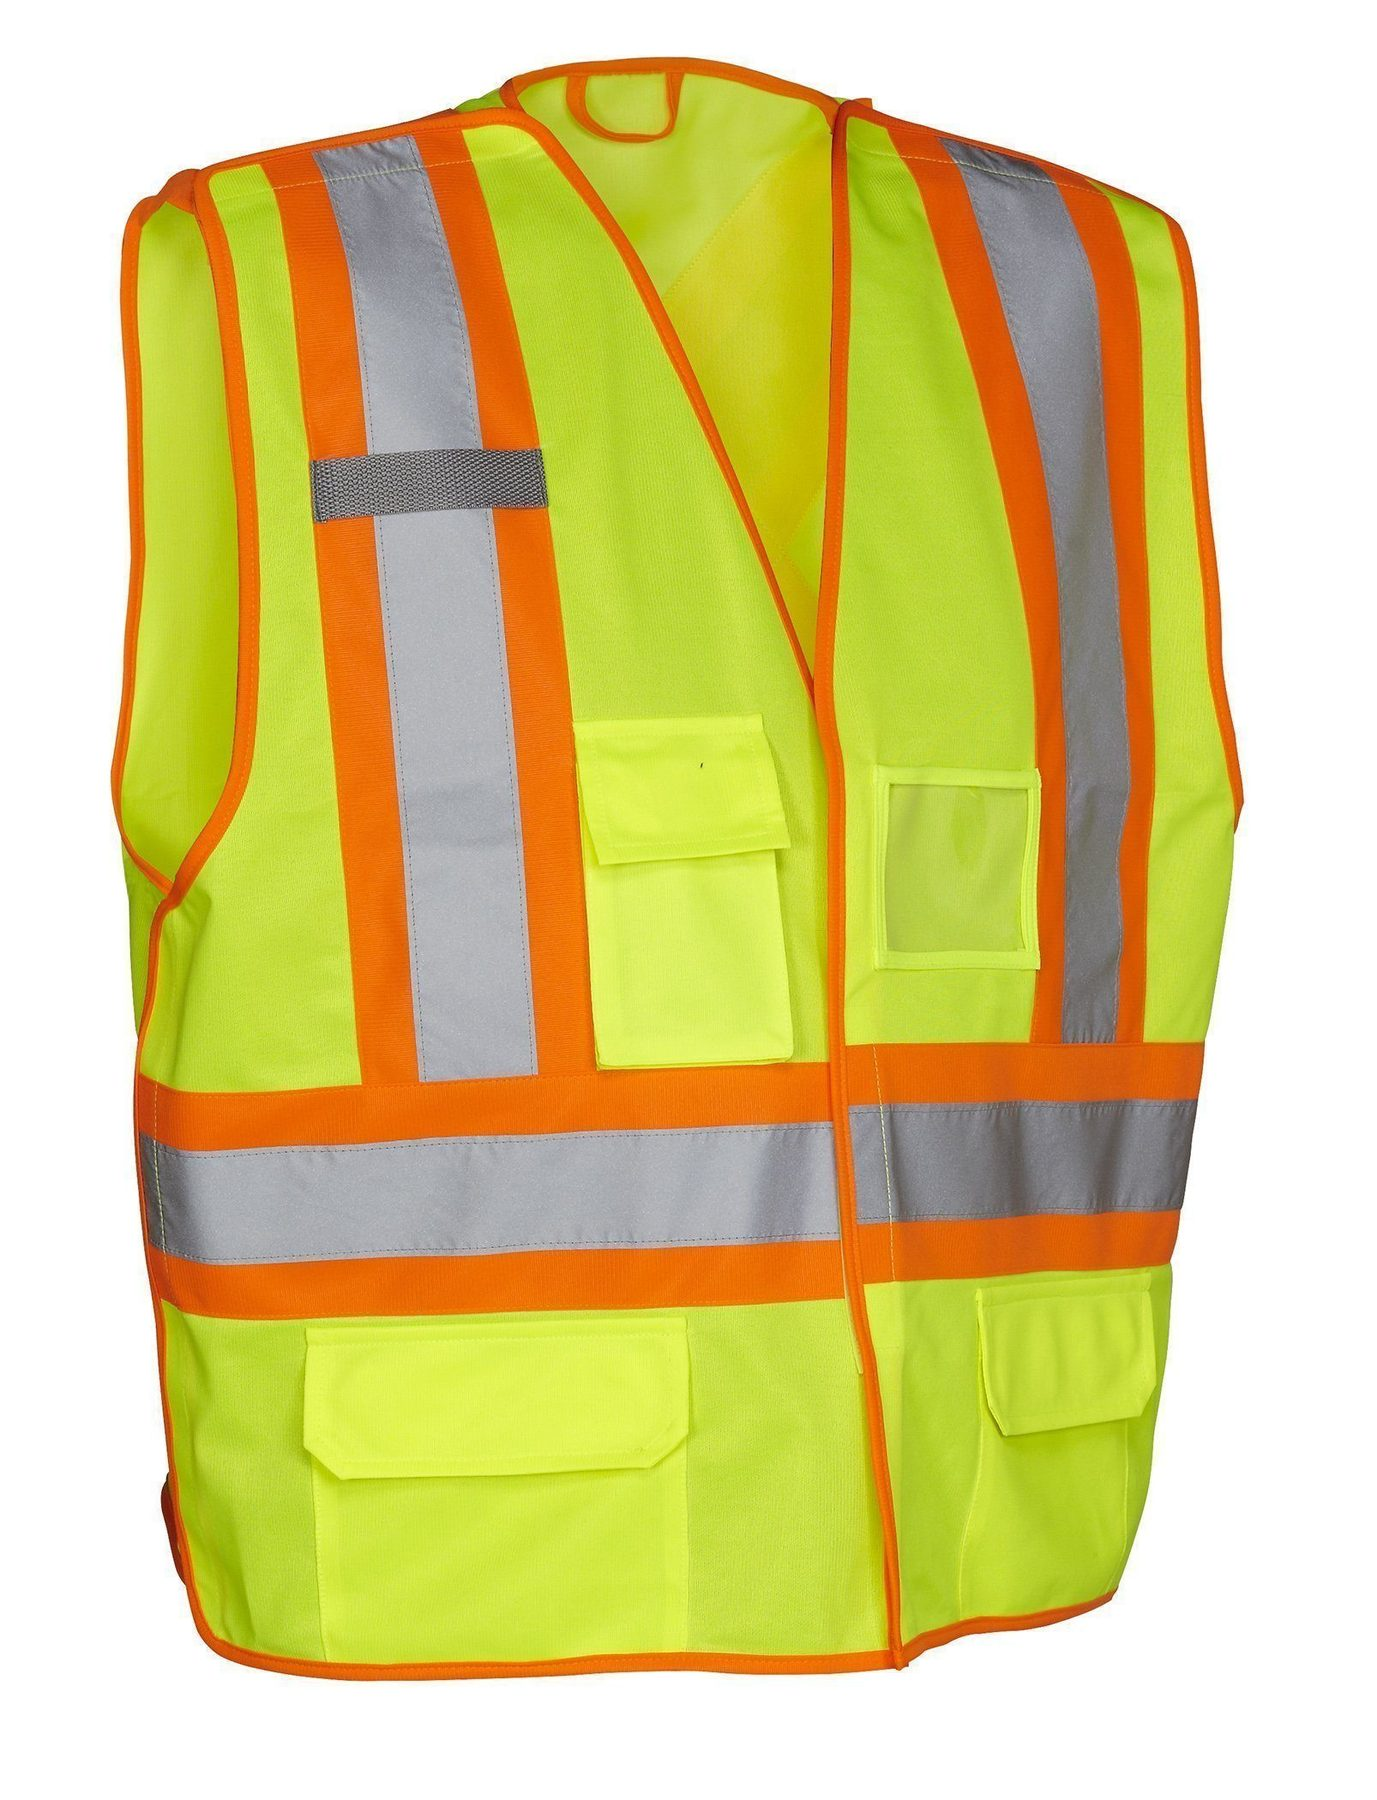 Forcefield Hi-Vis Tricot, Sized, 5-Point Tear-Away 022-TV2